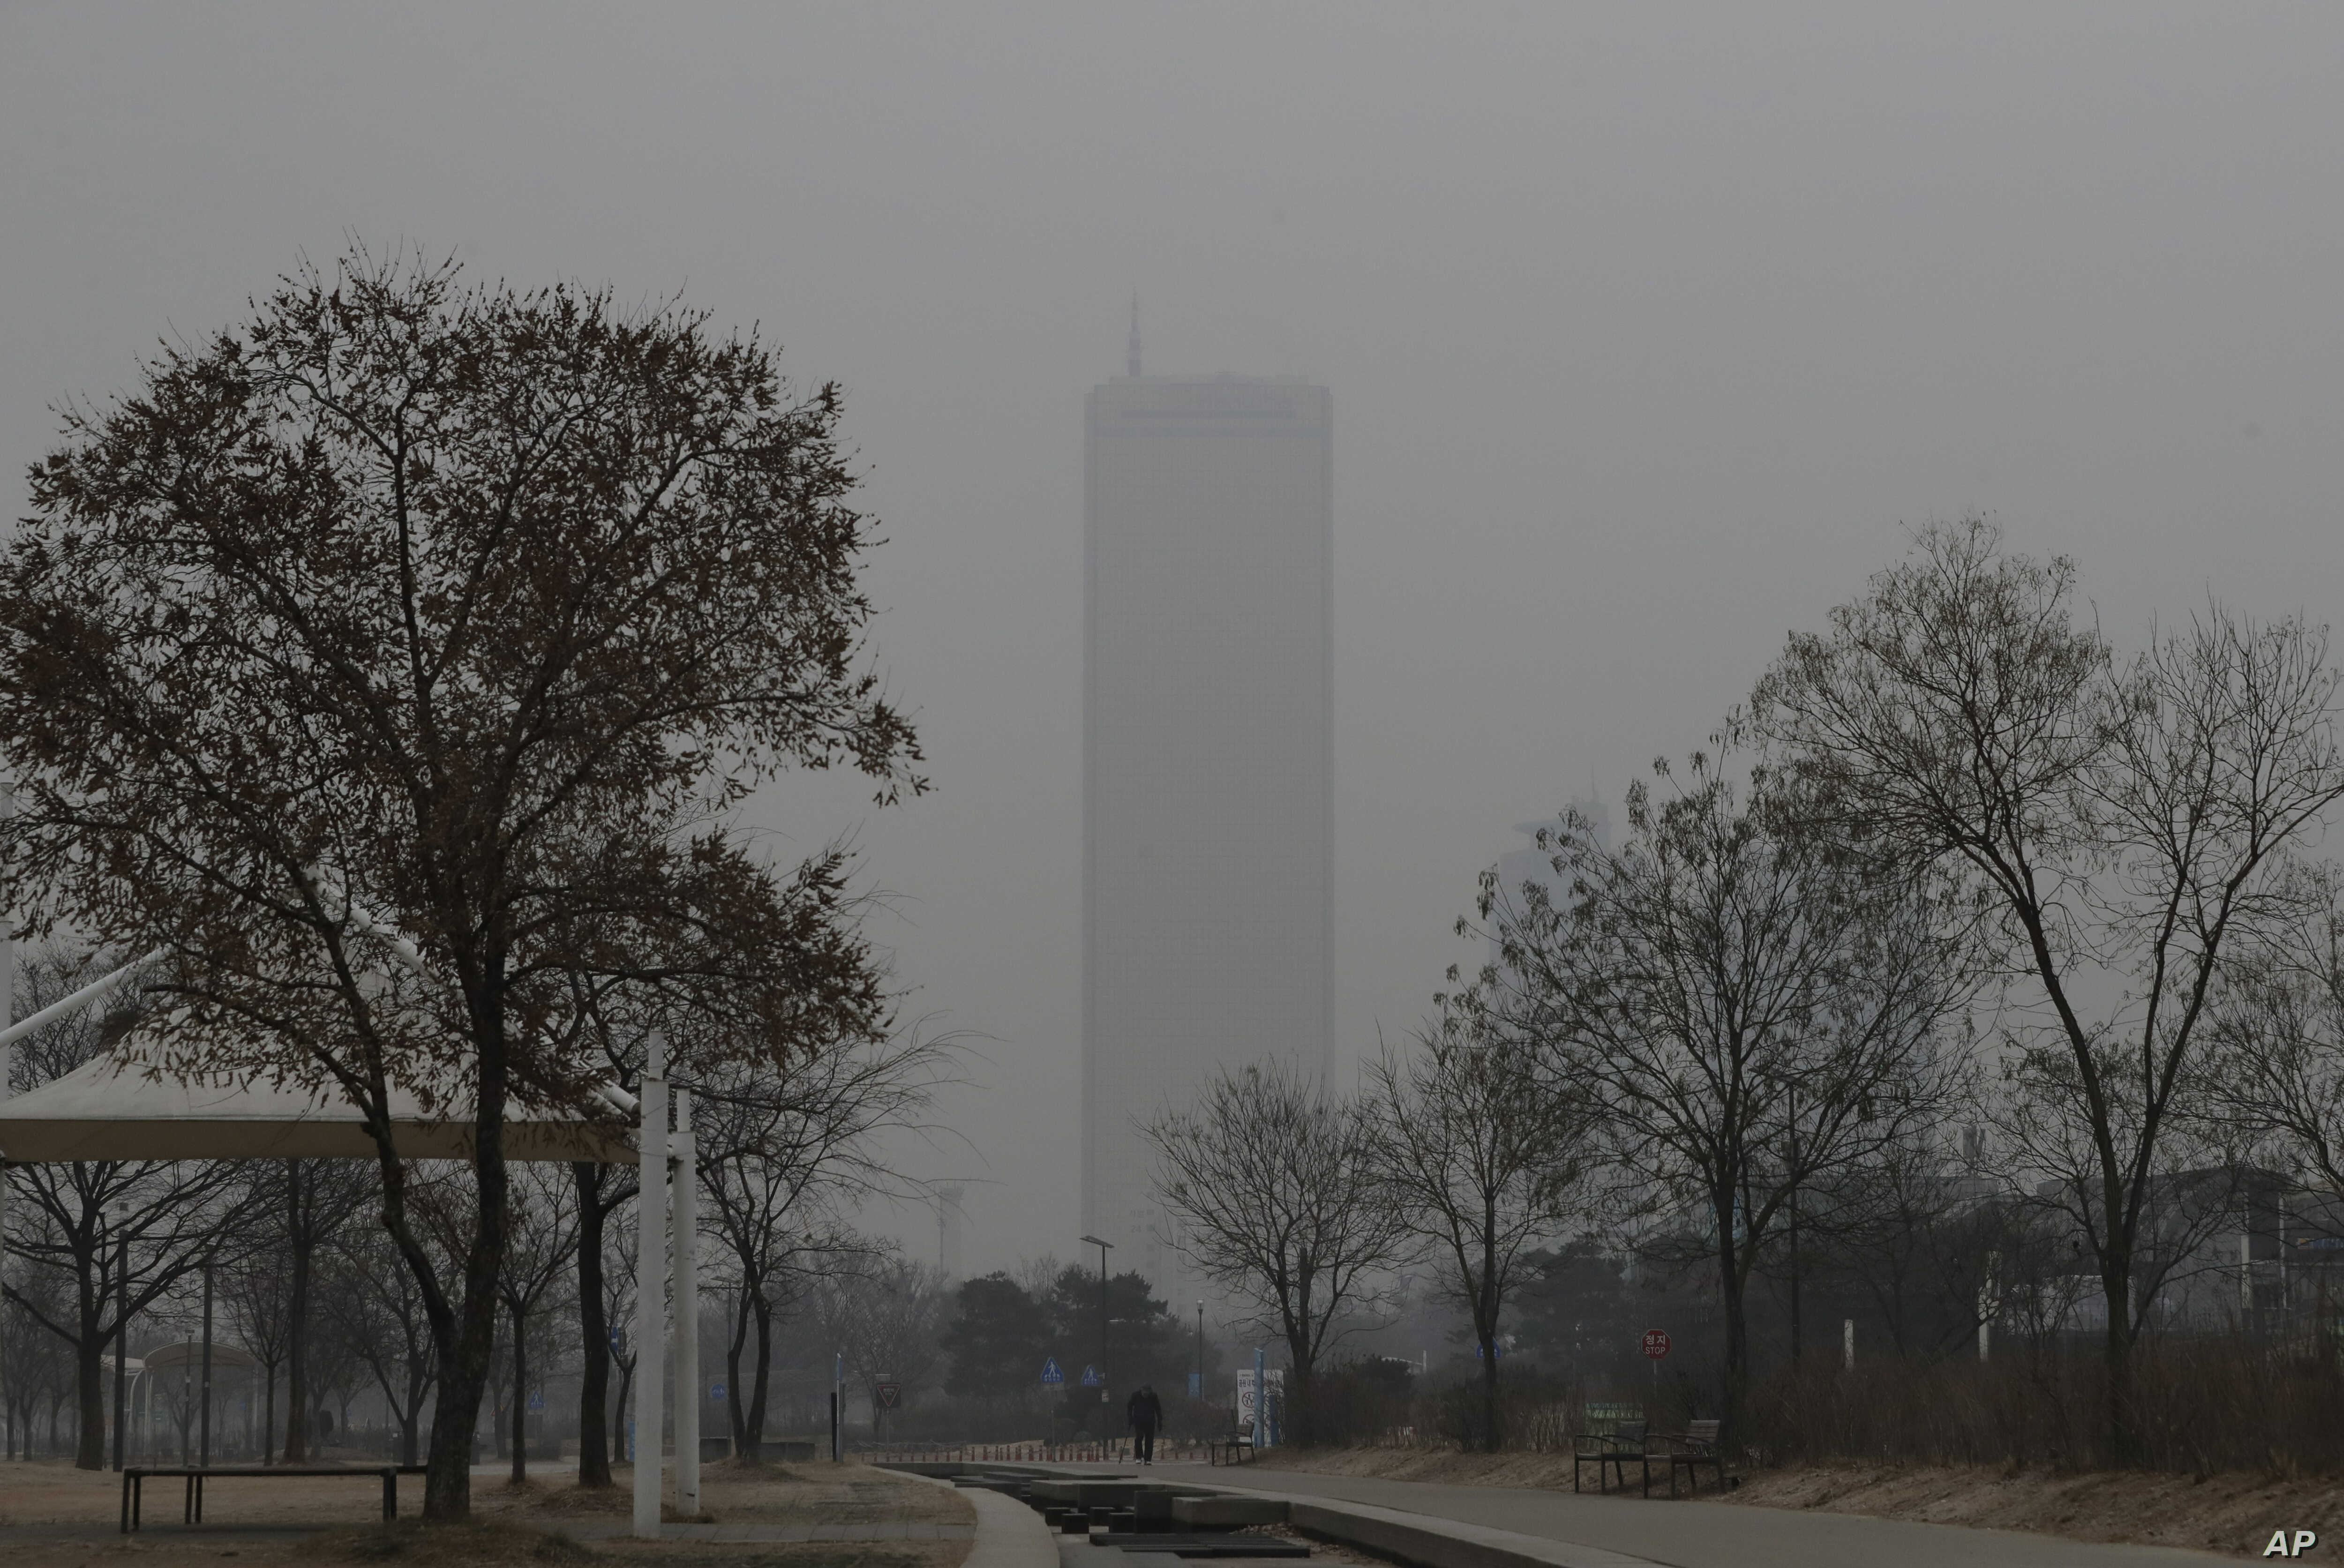 FILE - A man wears a face mask as he walks near the Han river at a park in a smog-covered Seoul, South Korea, Jan. 14, 2019. Unusually high levels of smog worsened by weather patterns are raising alarm across Asia.